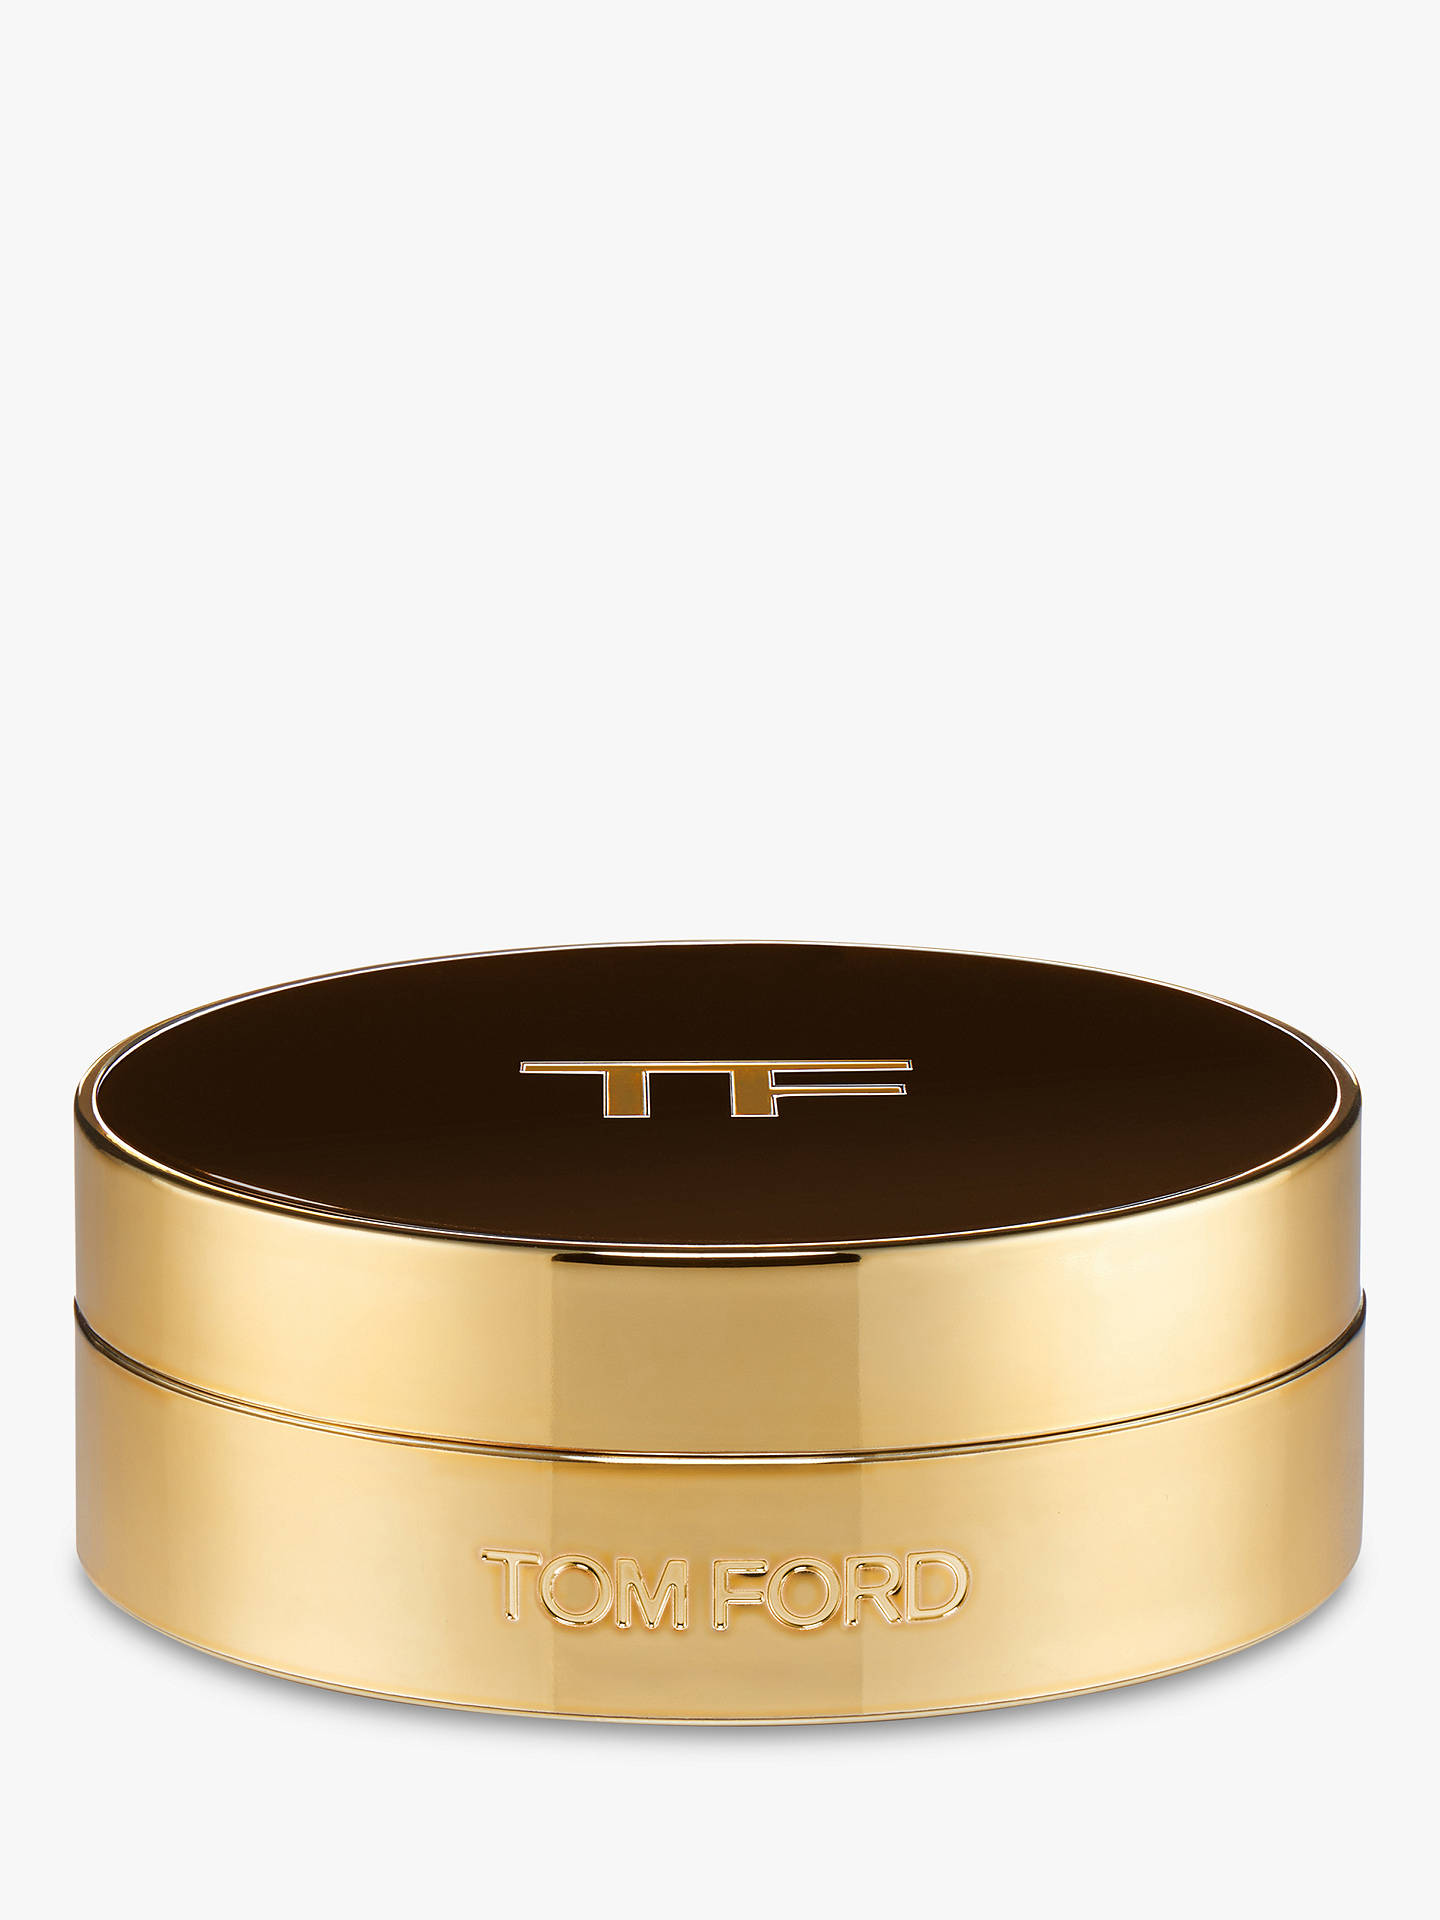 bff8666a1c6be Buy TOM FORD Foundation Compact Case Online at johnlewis.com